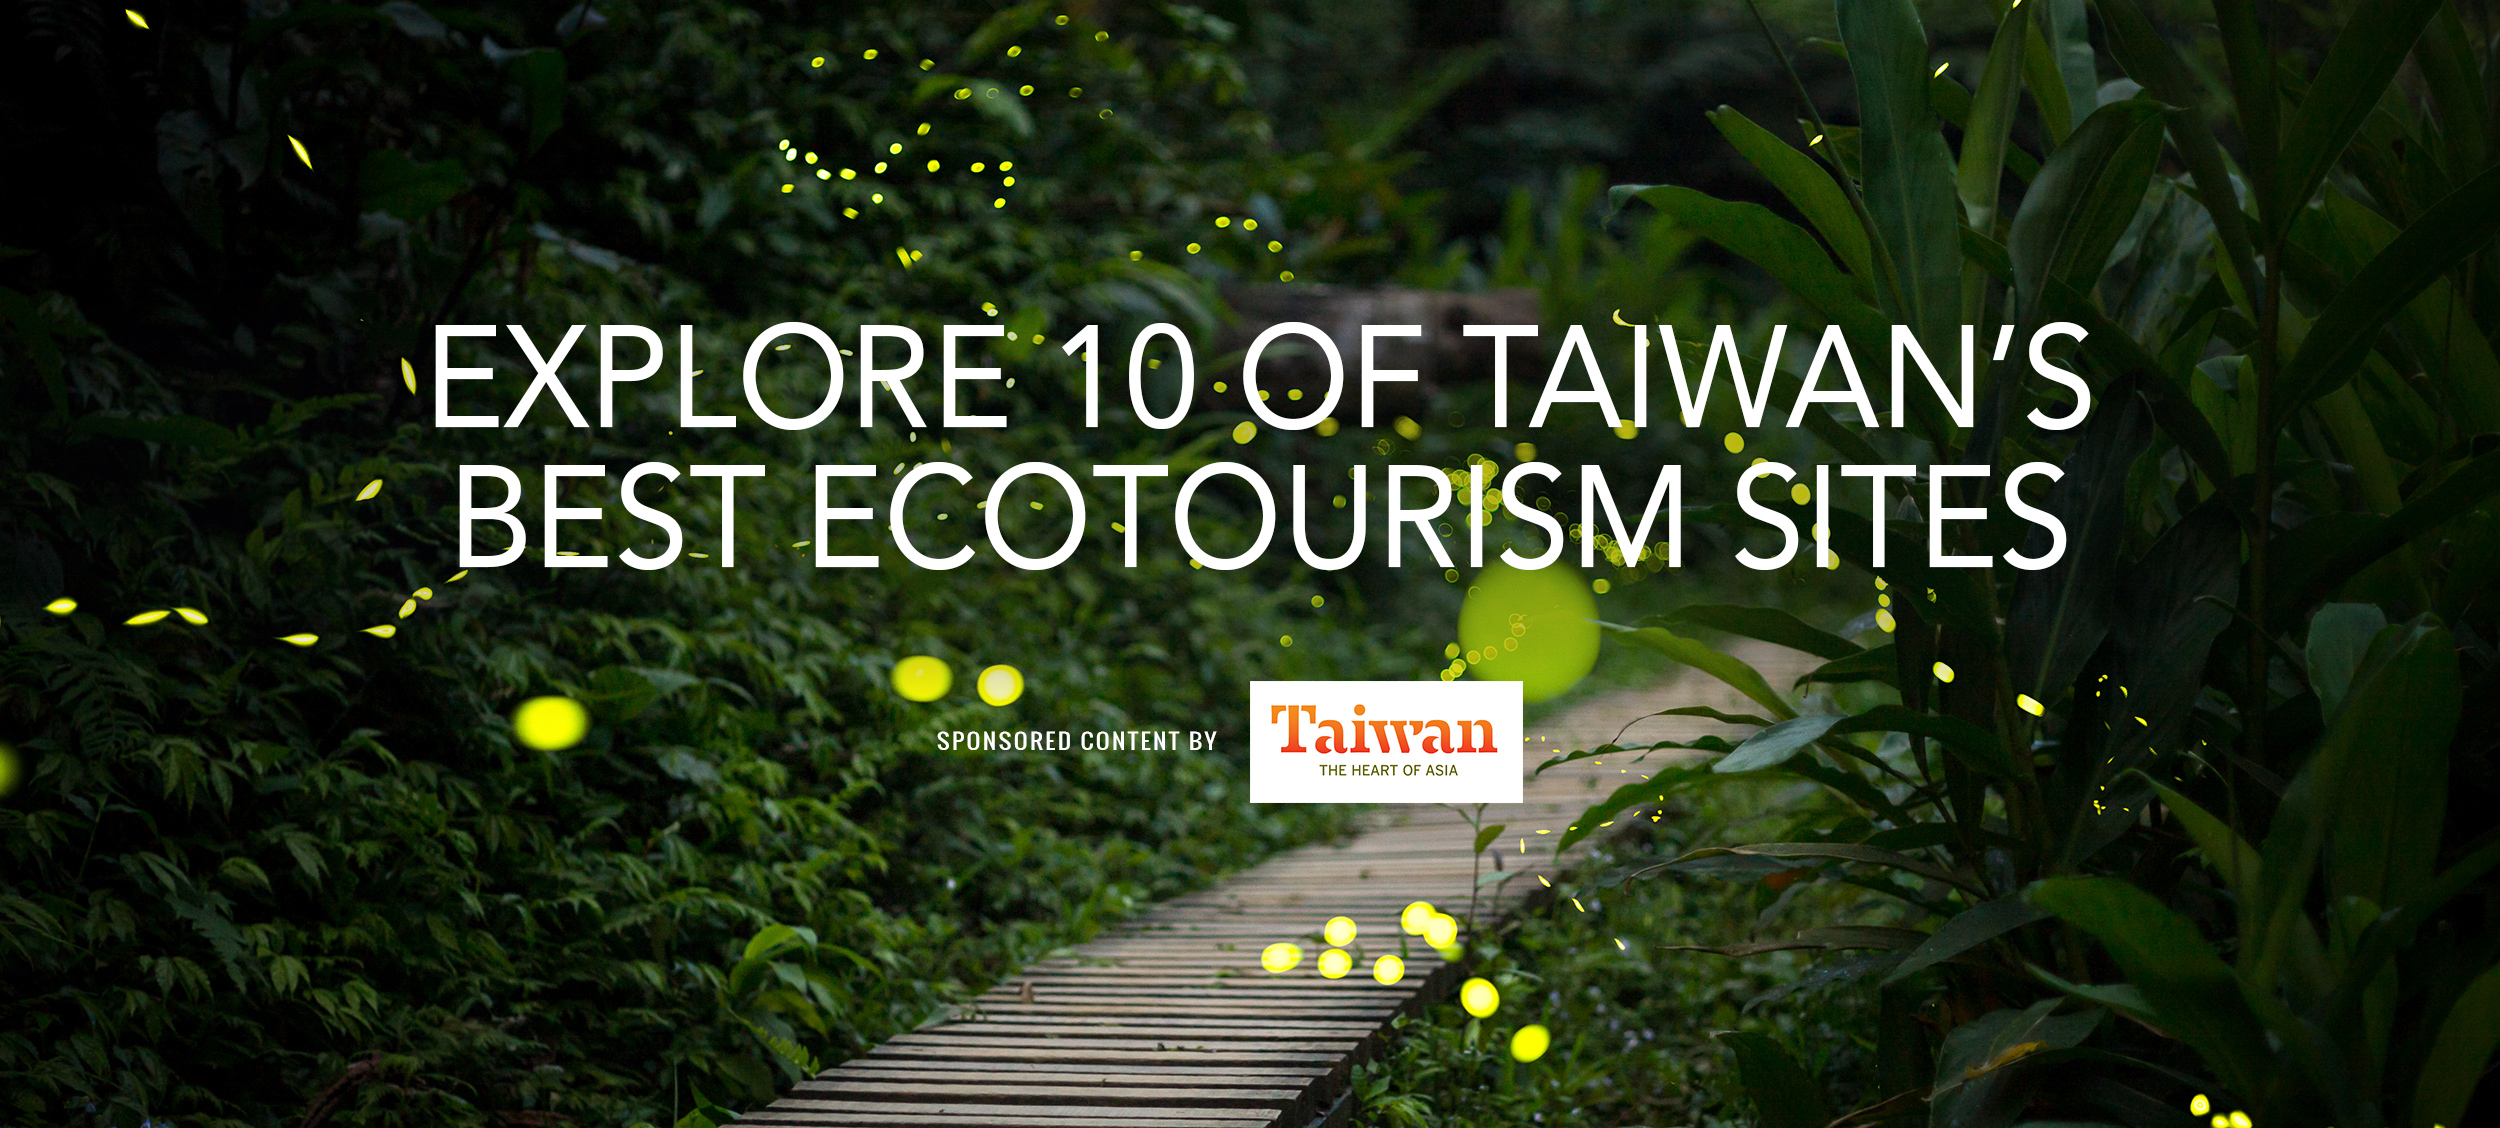 Taiwan Top 10 EcoTourism Banner CROP v2jpg u201c Explore 10 of Taiwanu0027s Best